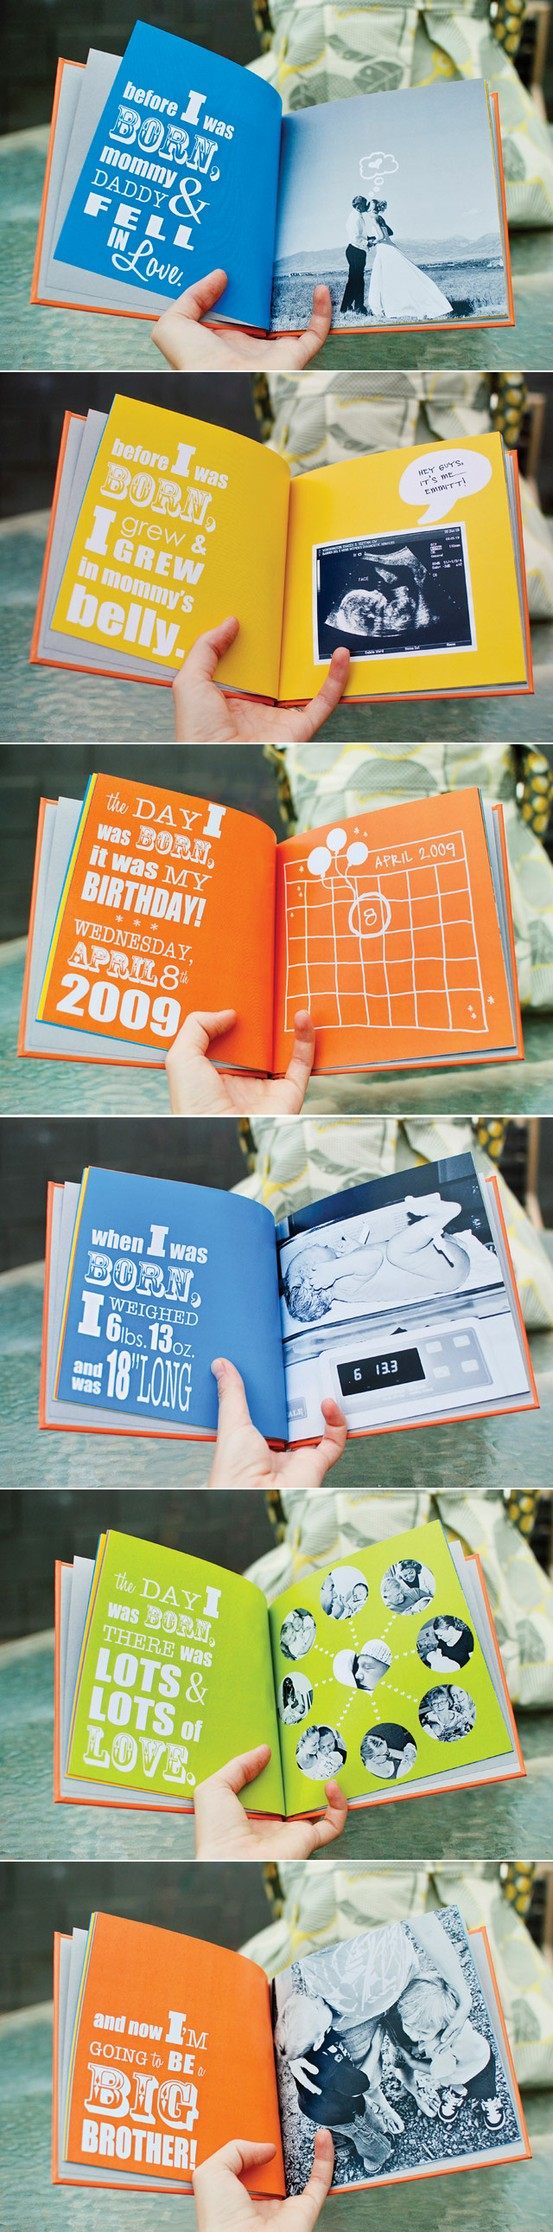 Wonderful Idea For An 8x8 Storybook Sure To Make A Little Feel So